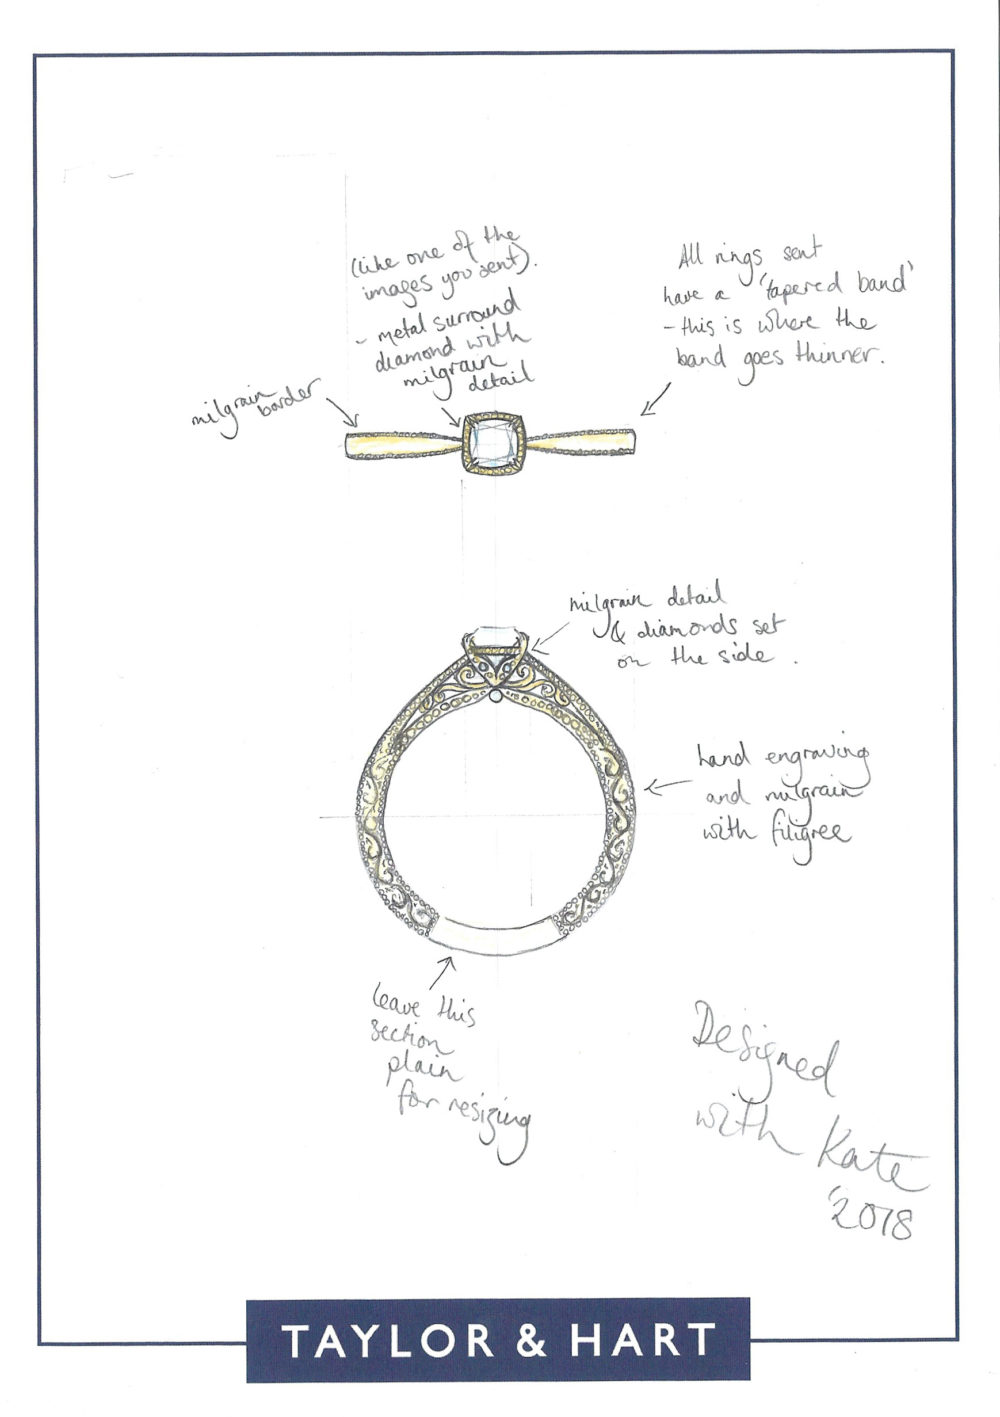 Taylor and Hart Customer Love Story, Engagement Ring, Happy Customers